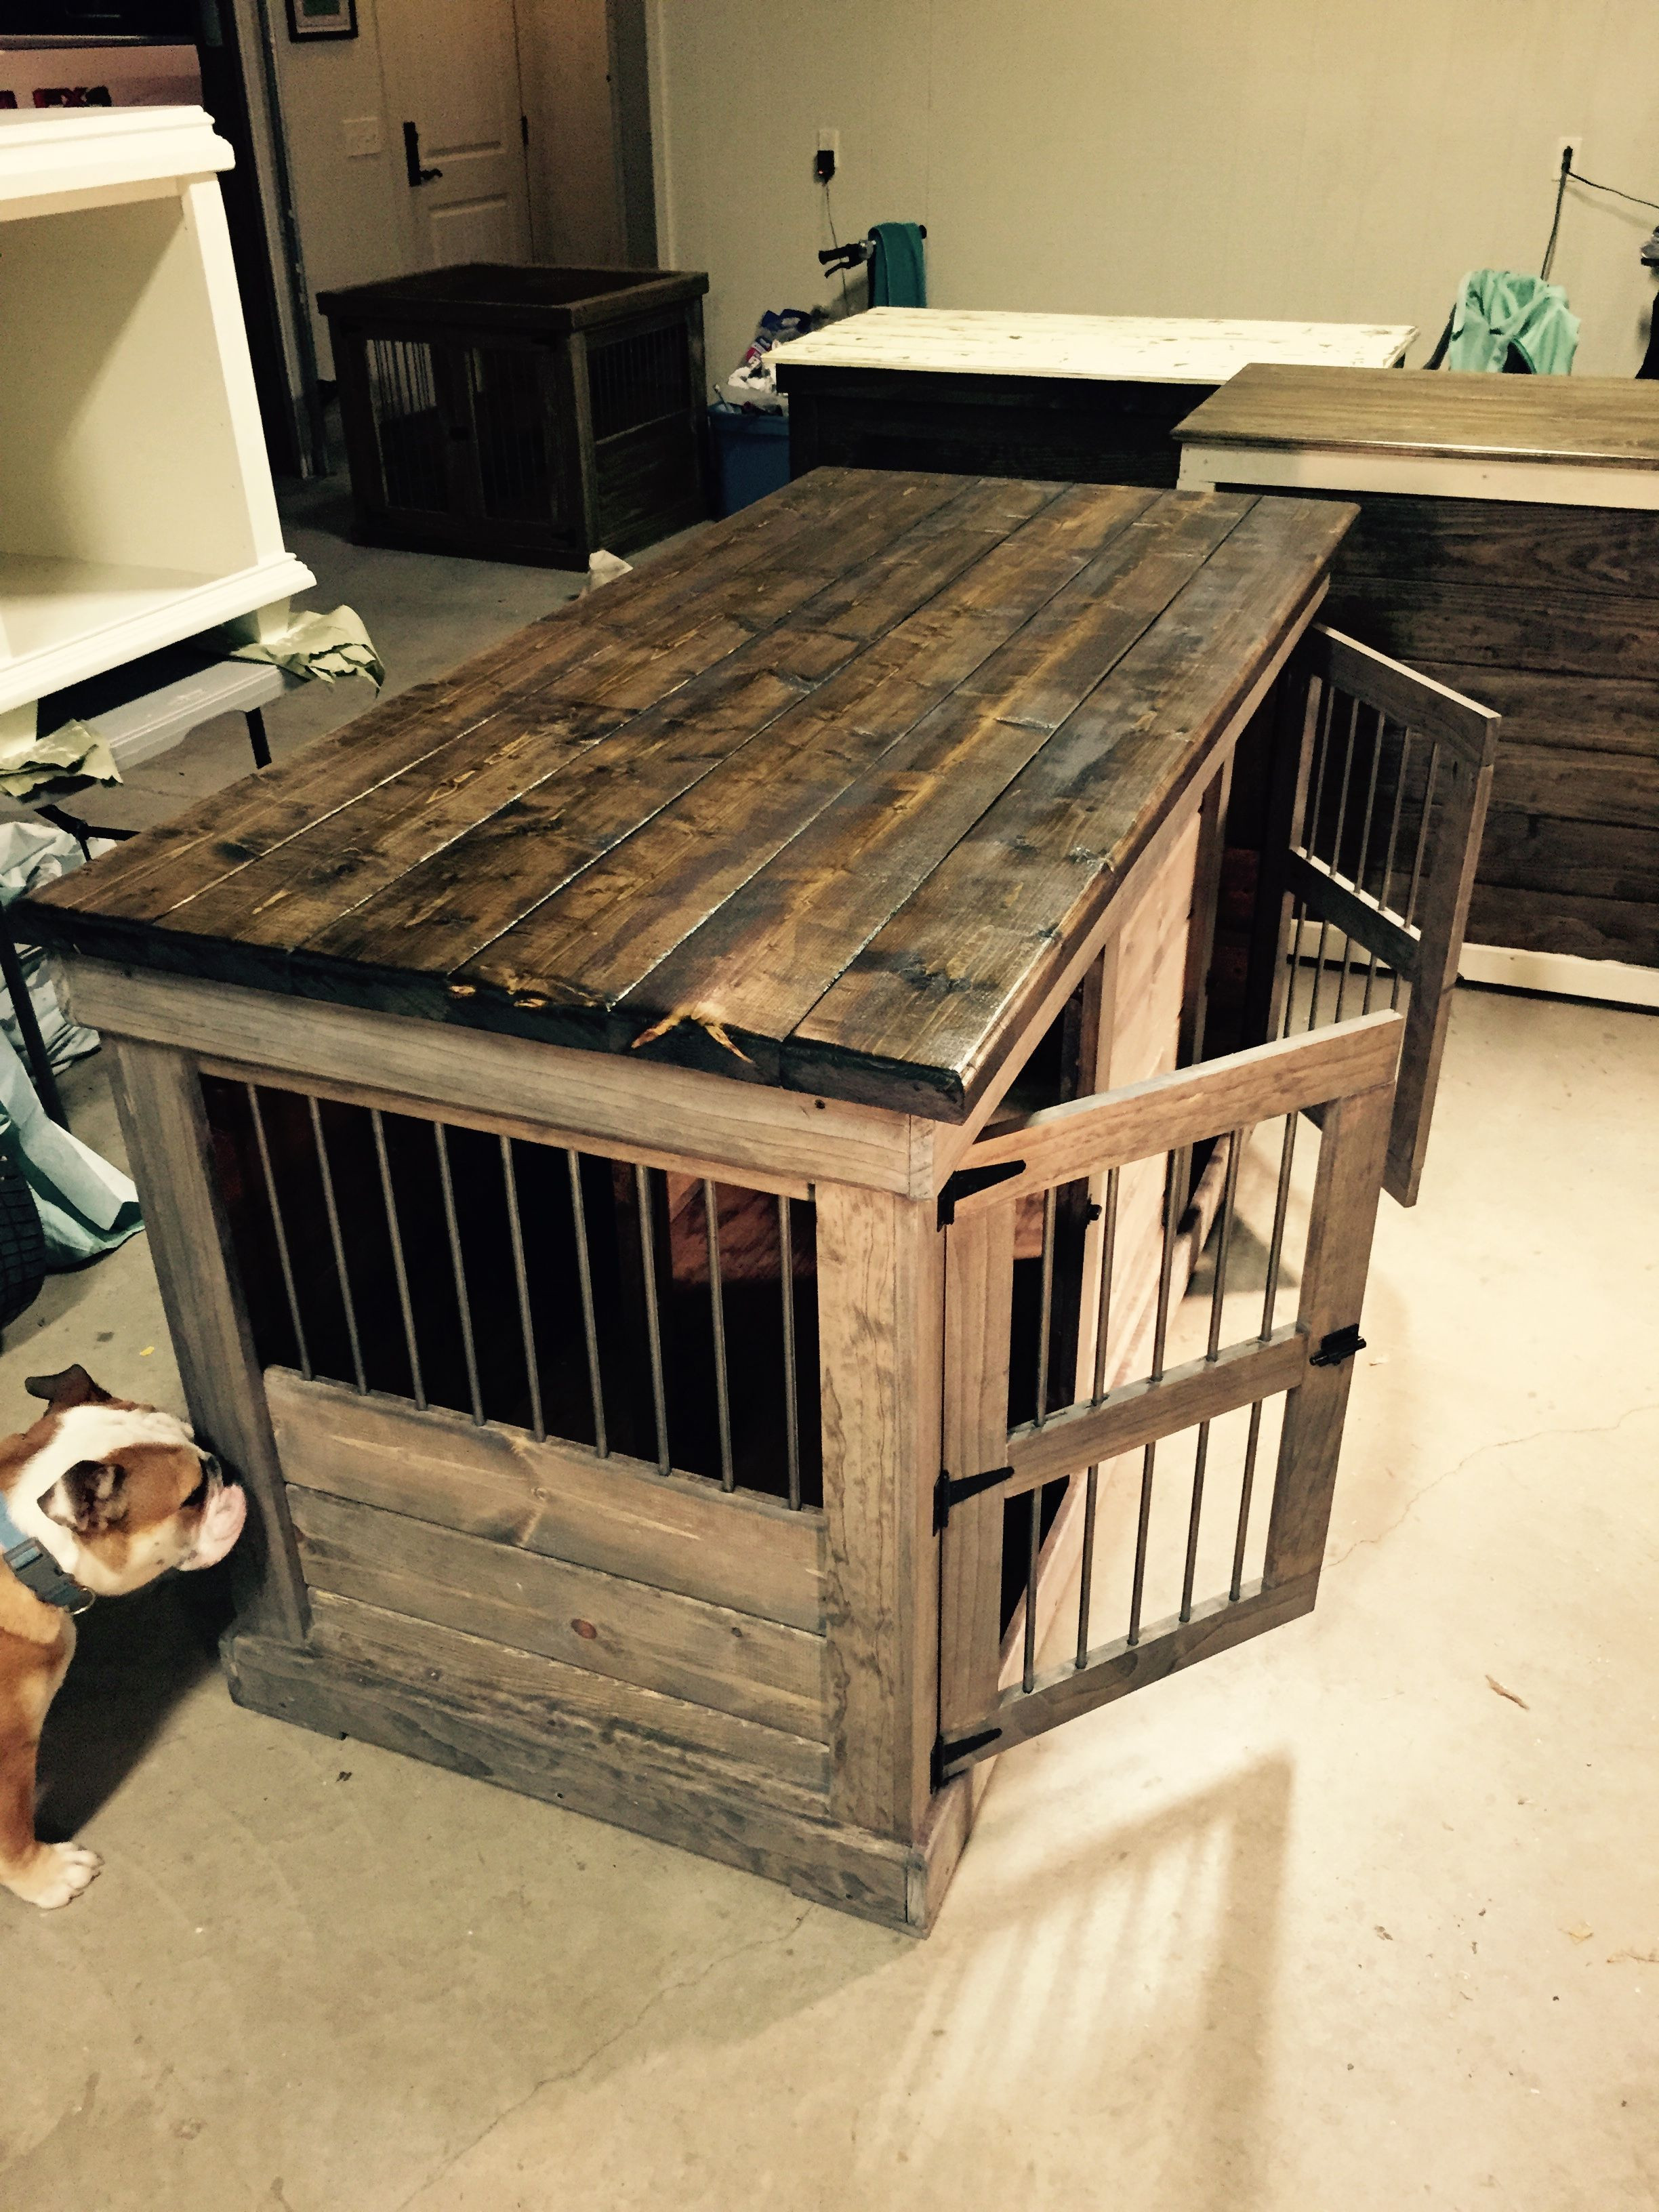 Best ideas about DIY Indoor Dog Kennel . Save or Pin Handcrafted dog kennel and dog crate Custom dog kennel Now.